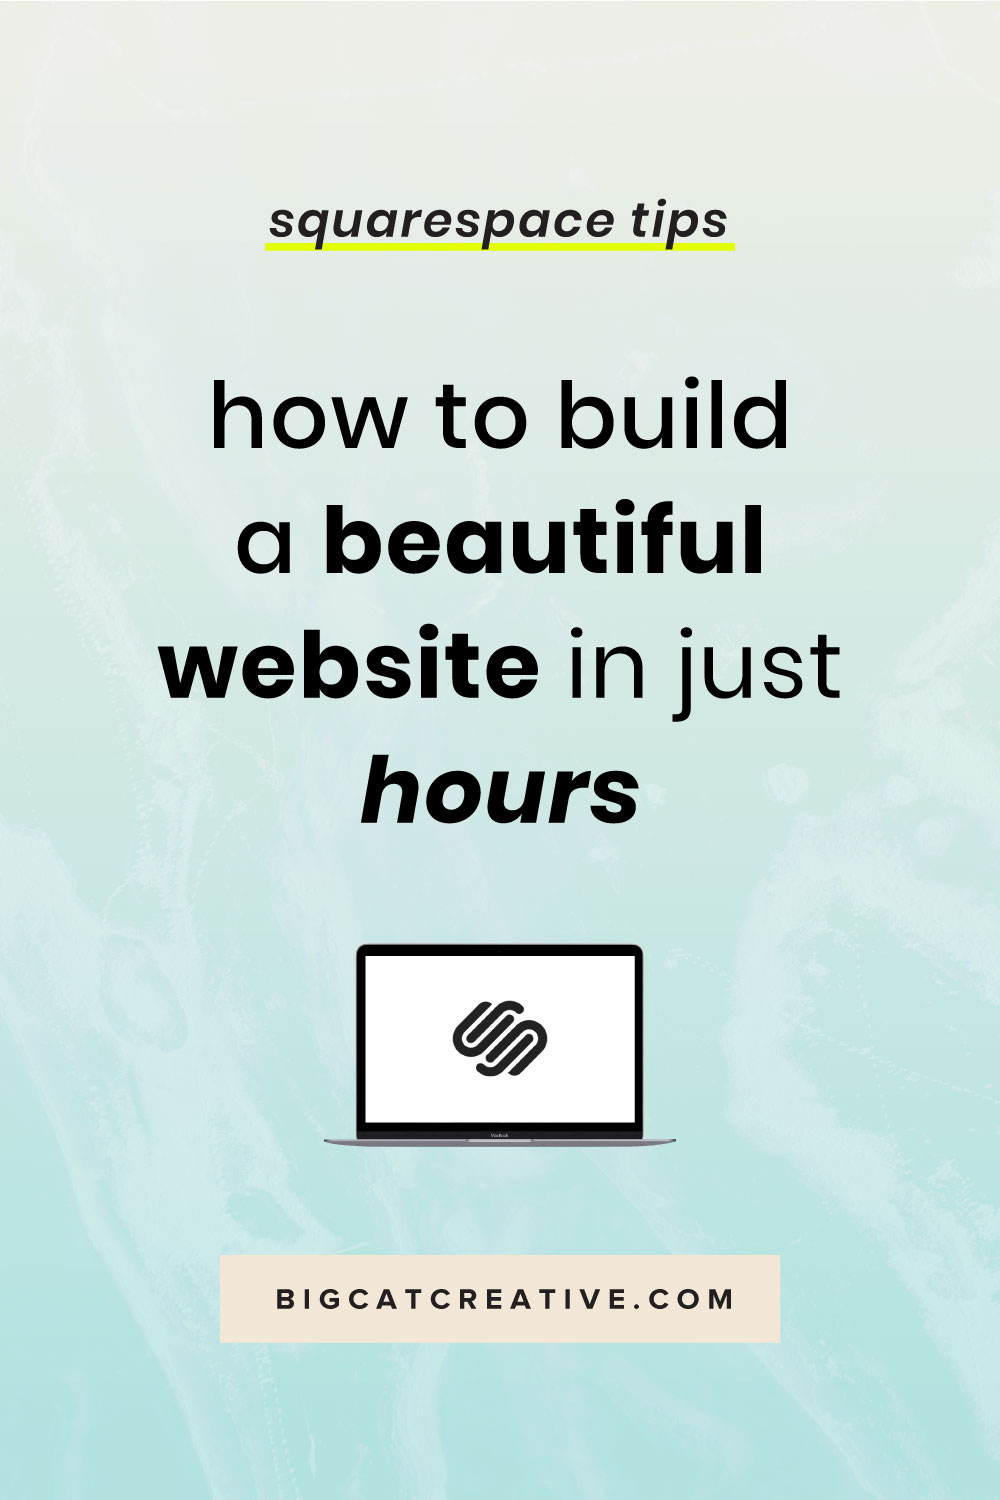 How-to-Build-a-Beautiful-Website-in-Hours.jpg